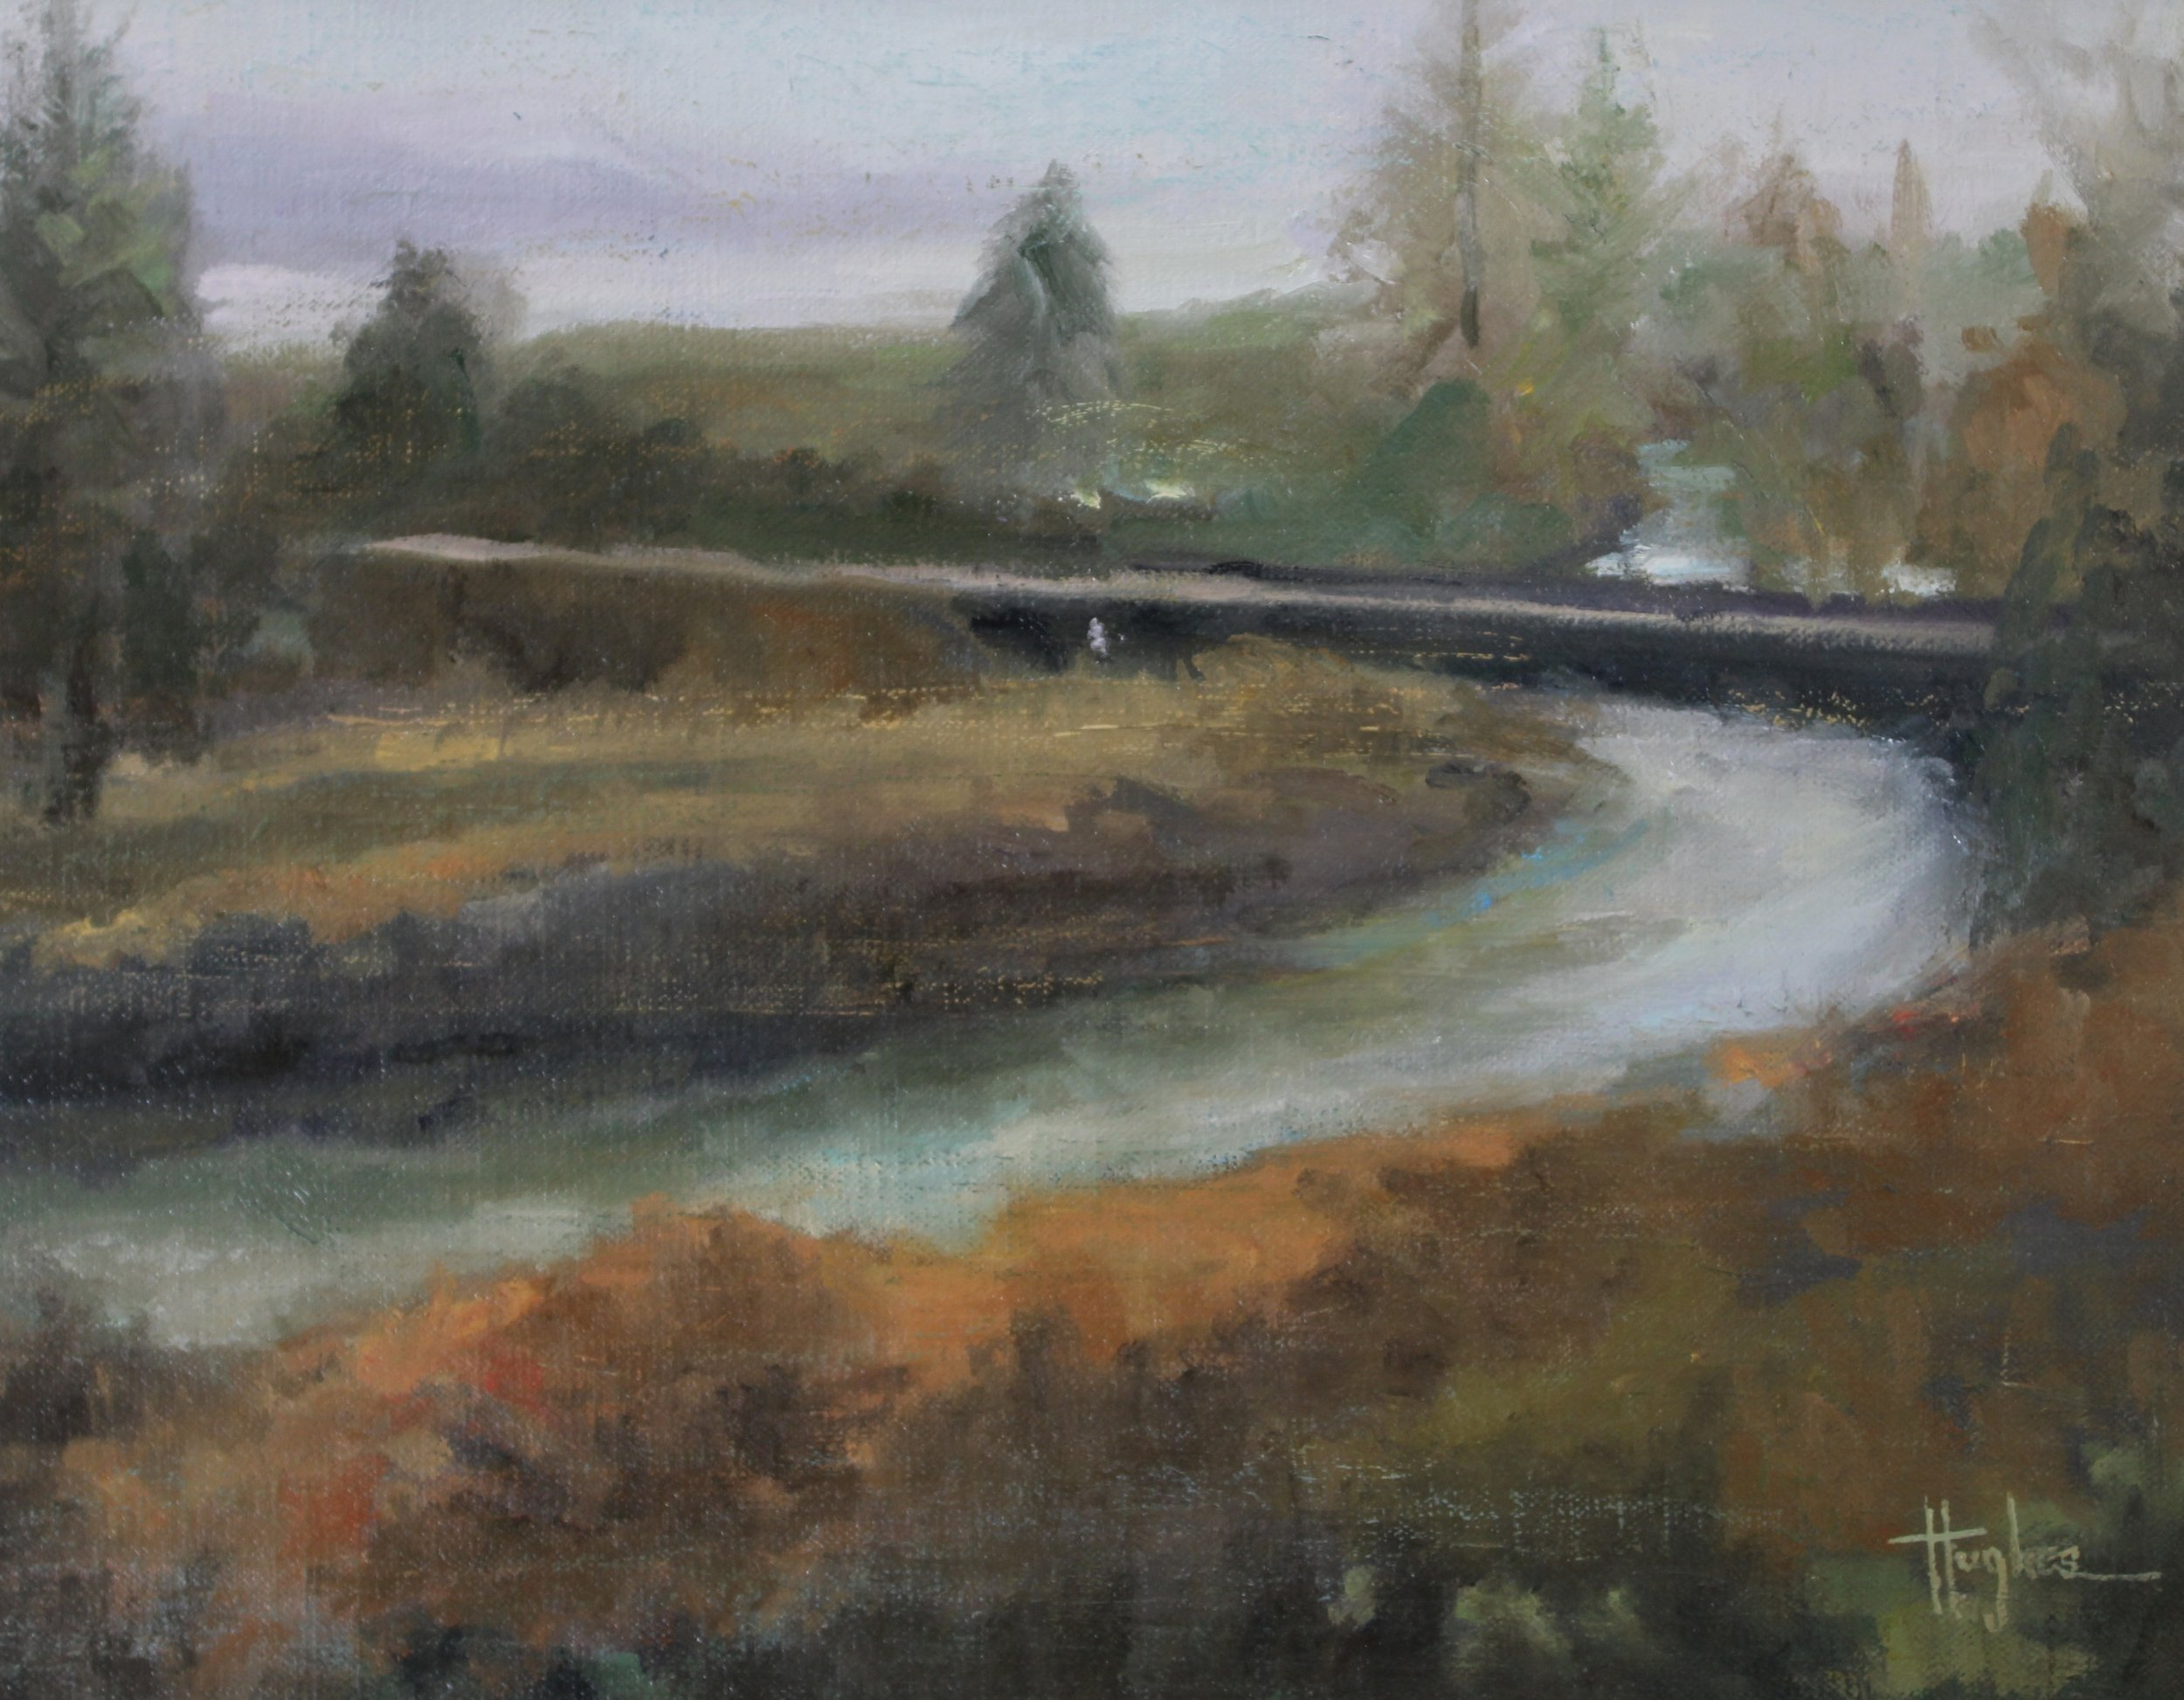 """Crossing the Snohomish"""", """"11 x 14, Oil on Linen Panel, Snohomish, WA"""